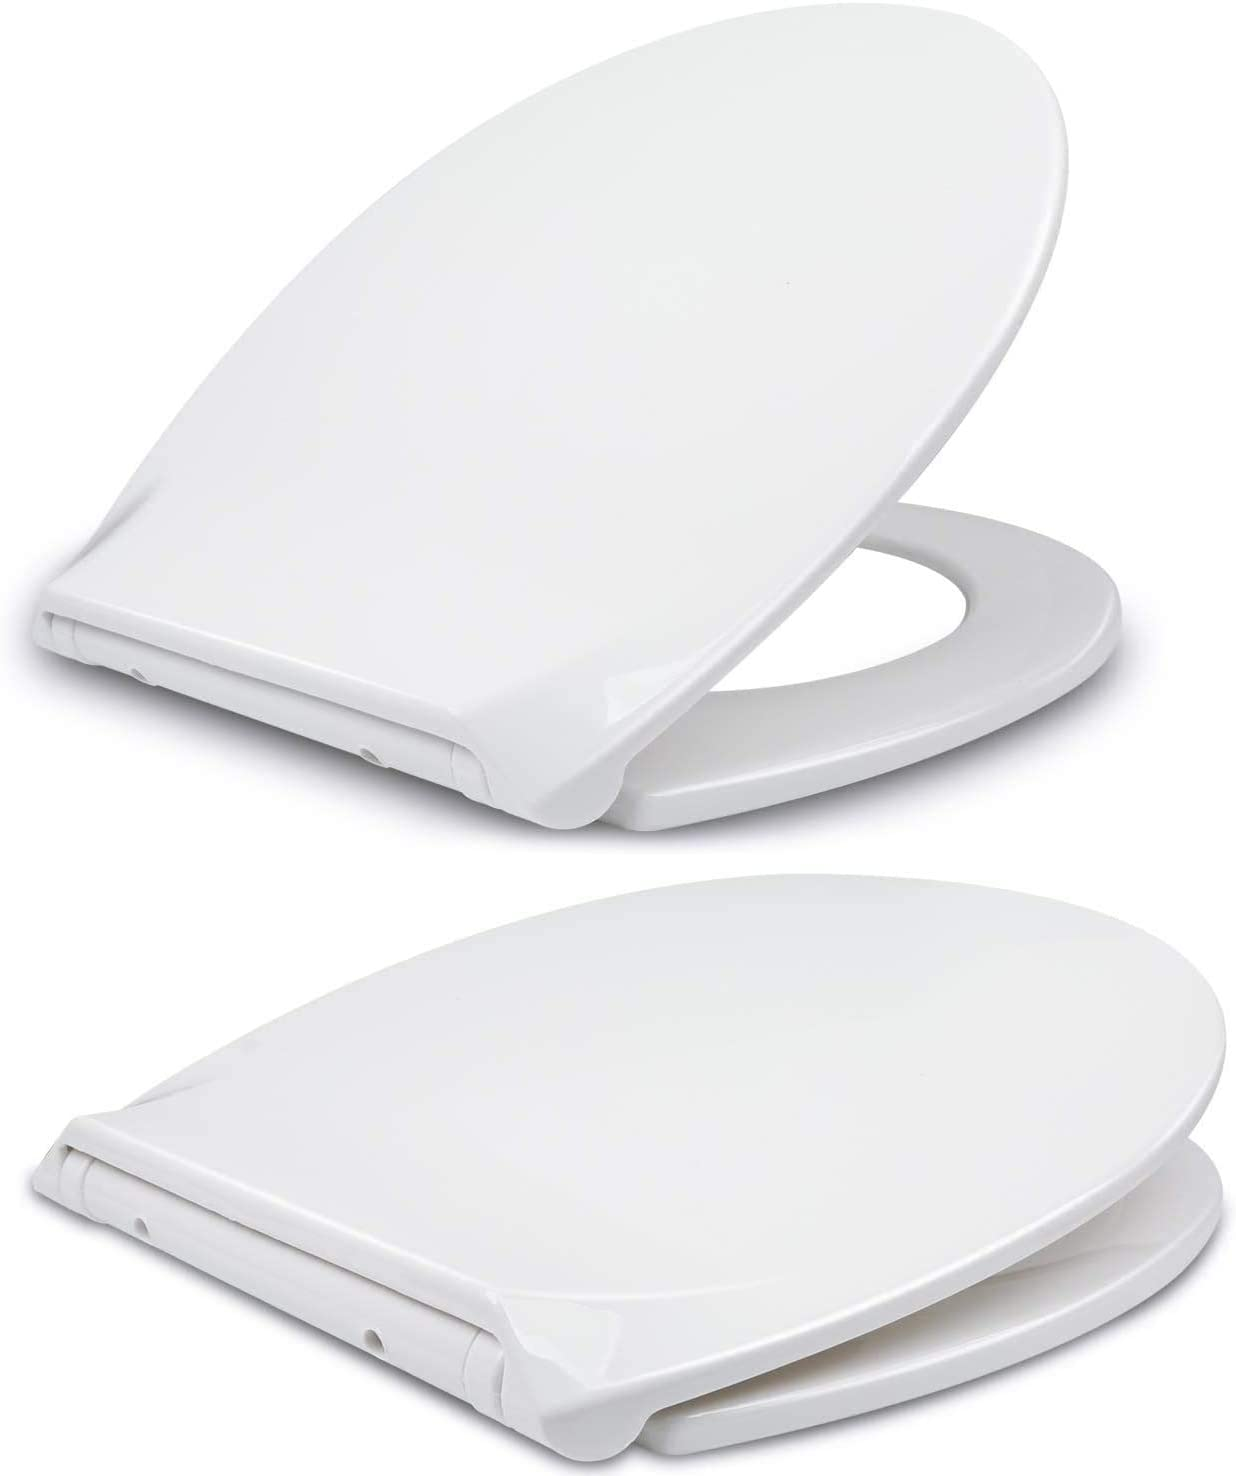 Simple Top Fixing O Shape AEE LIFV Soft Close Quick Release Toilet Seat Automatic Lowering,Ergonomic Design with Stainless Steel Hinges